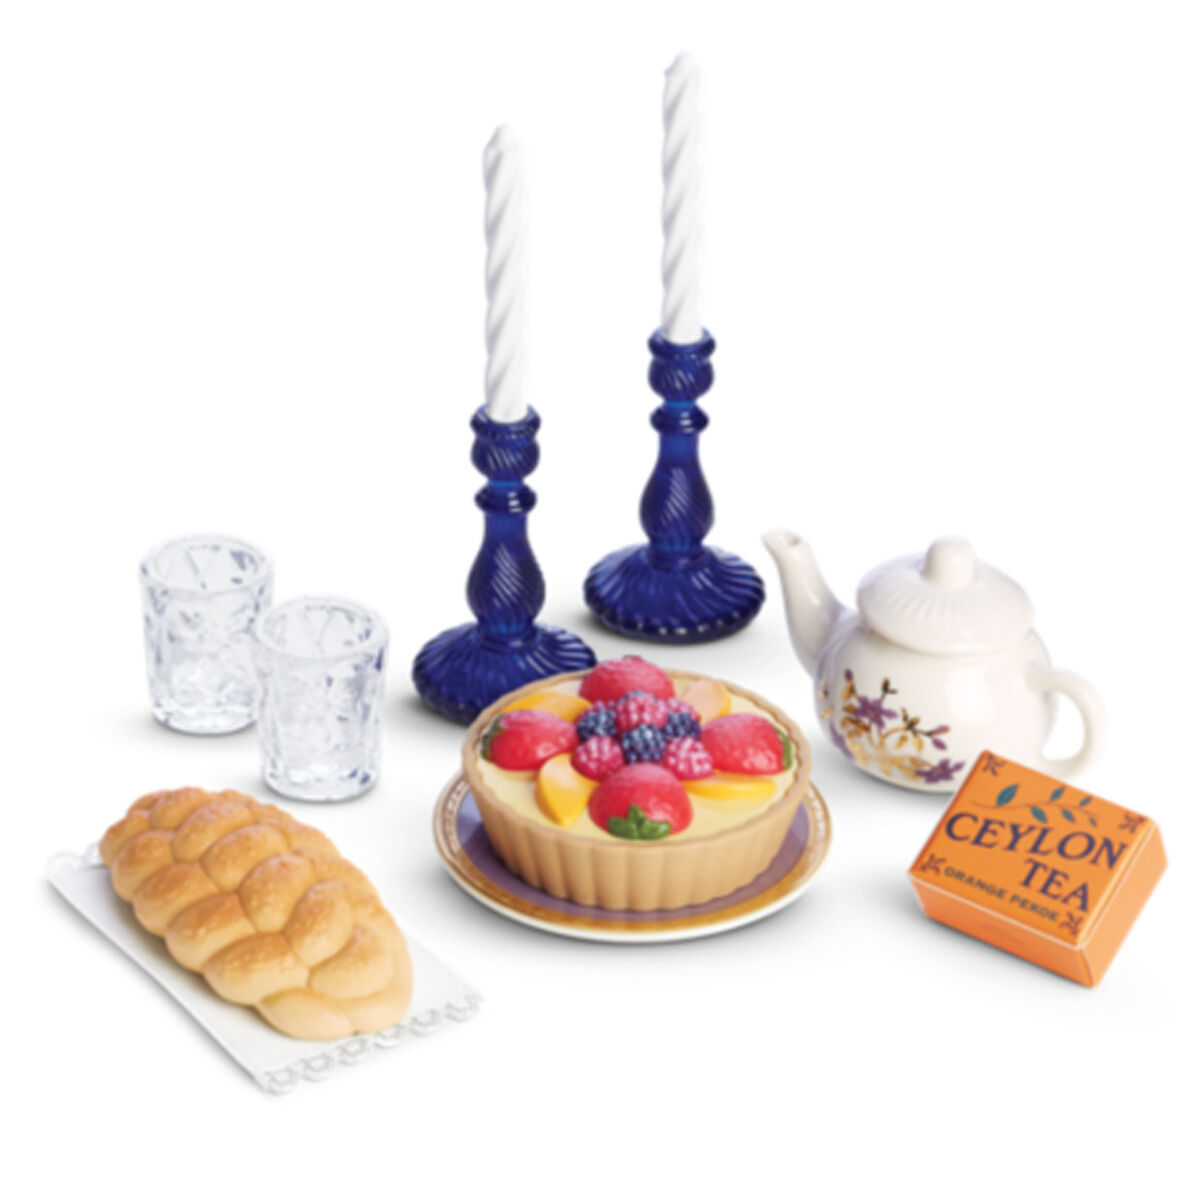 American Girl Rebecca Teatime Traditions für 45.7cm Puppen Teeparty Essen Kerze